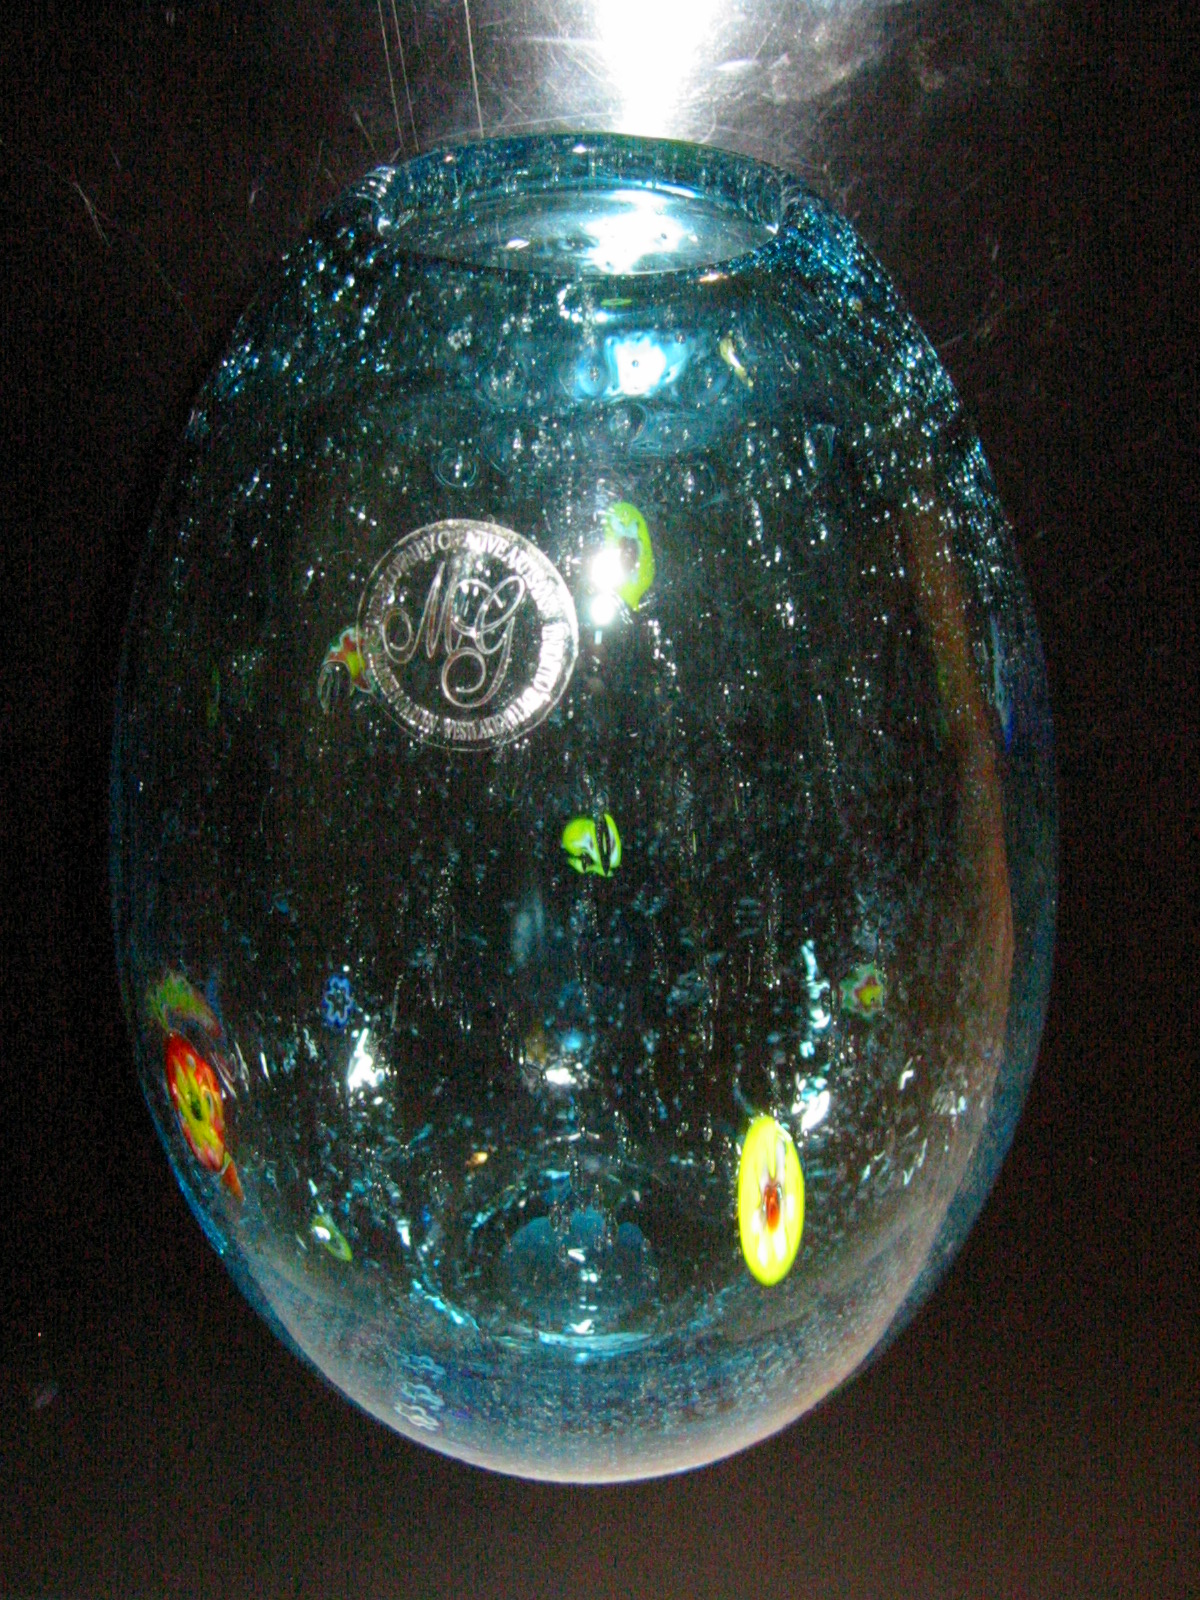 Margies garden hand blown glass vase for sale antiques spectacular hand blown blue glass vase gorgeous floral encased colored glass natural bubbles excellent condition by california designer margies garden reviewsmspy